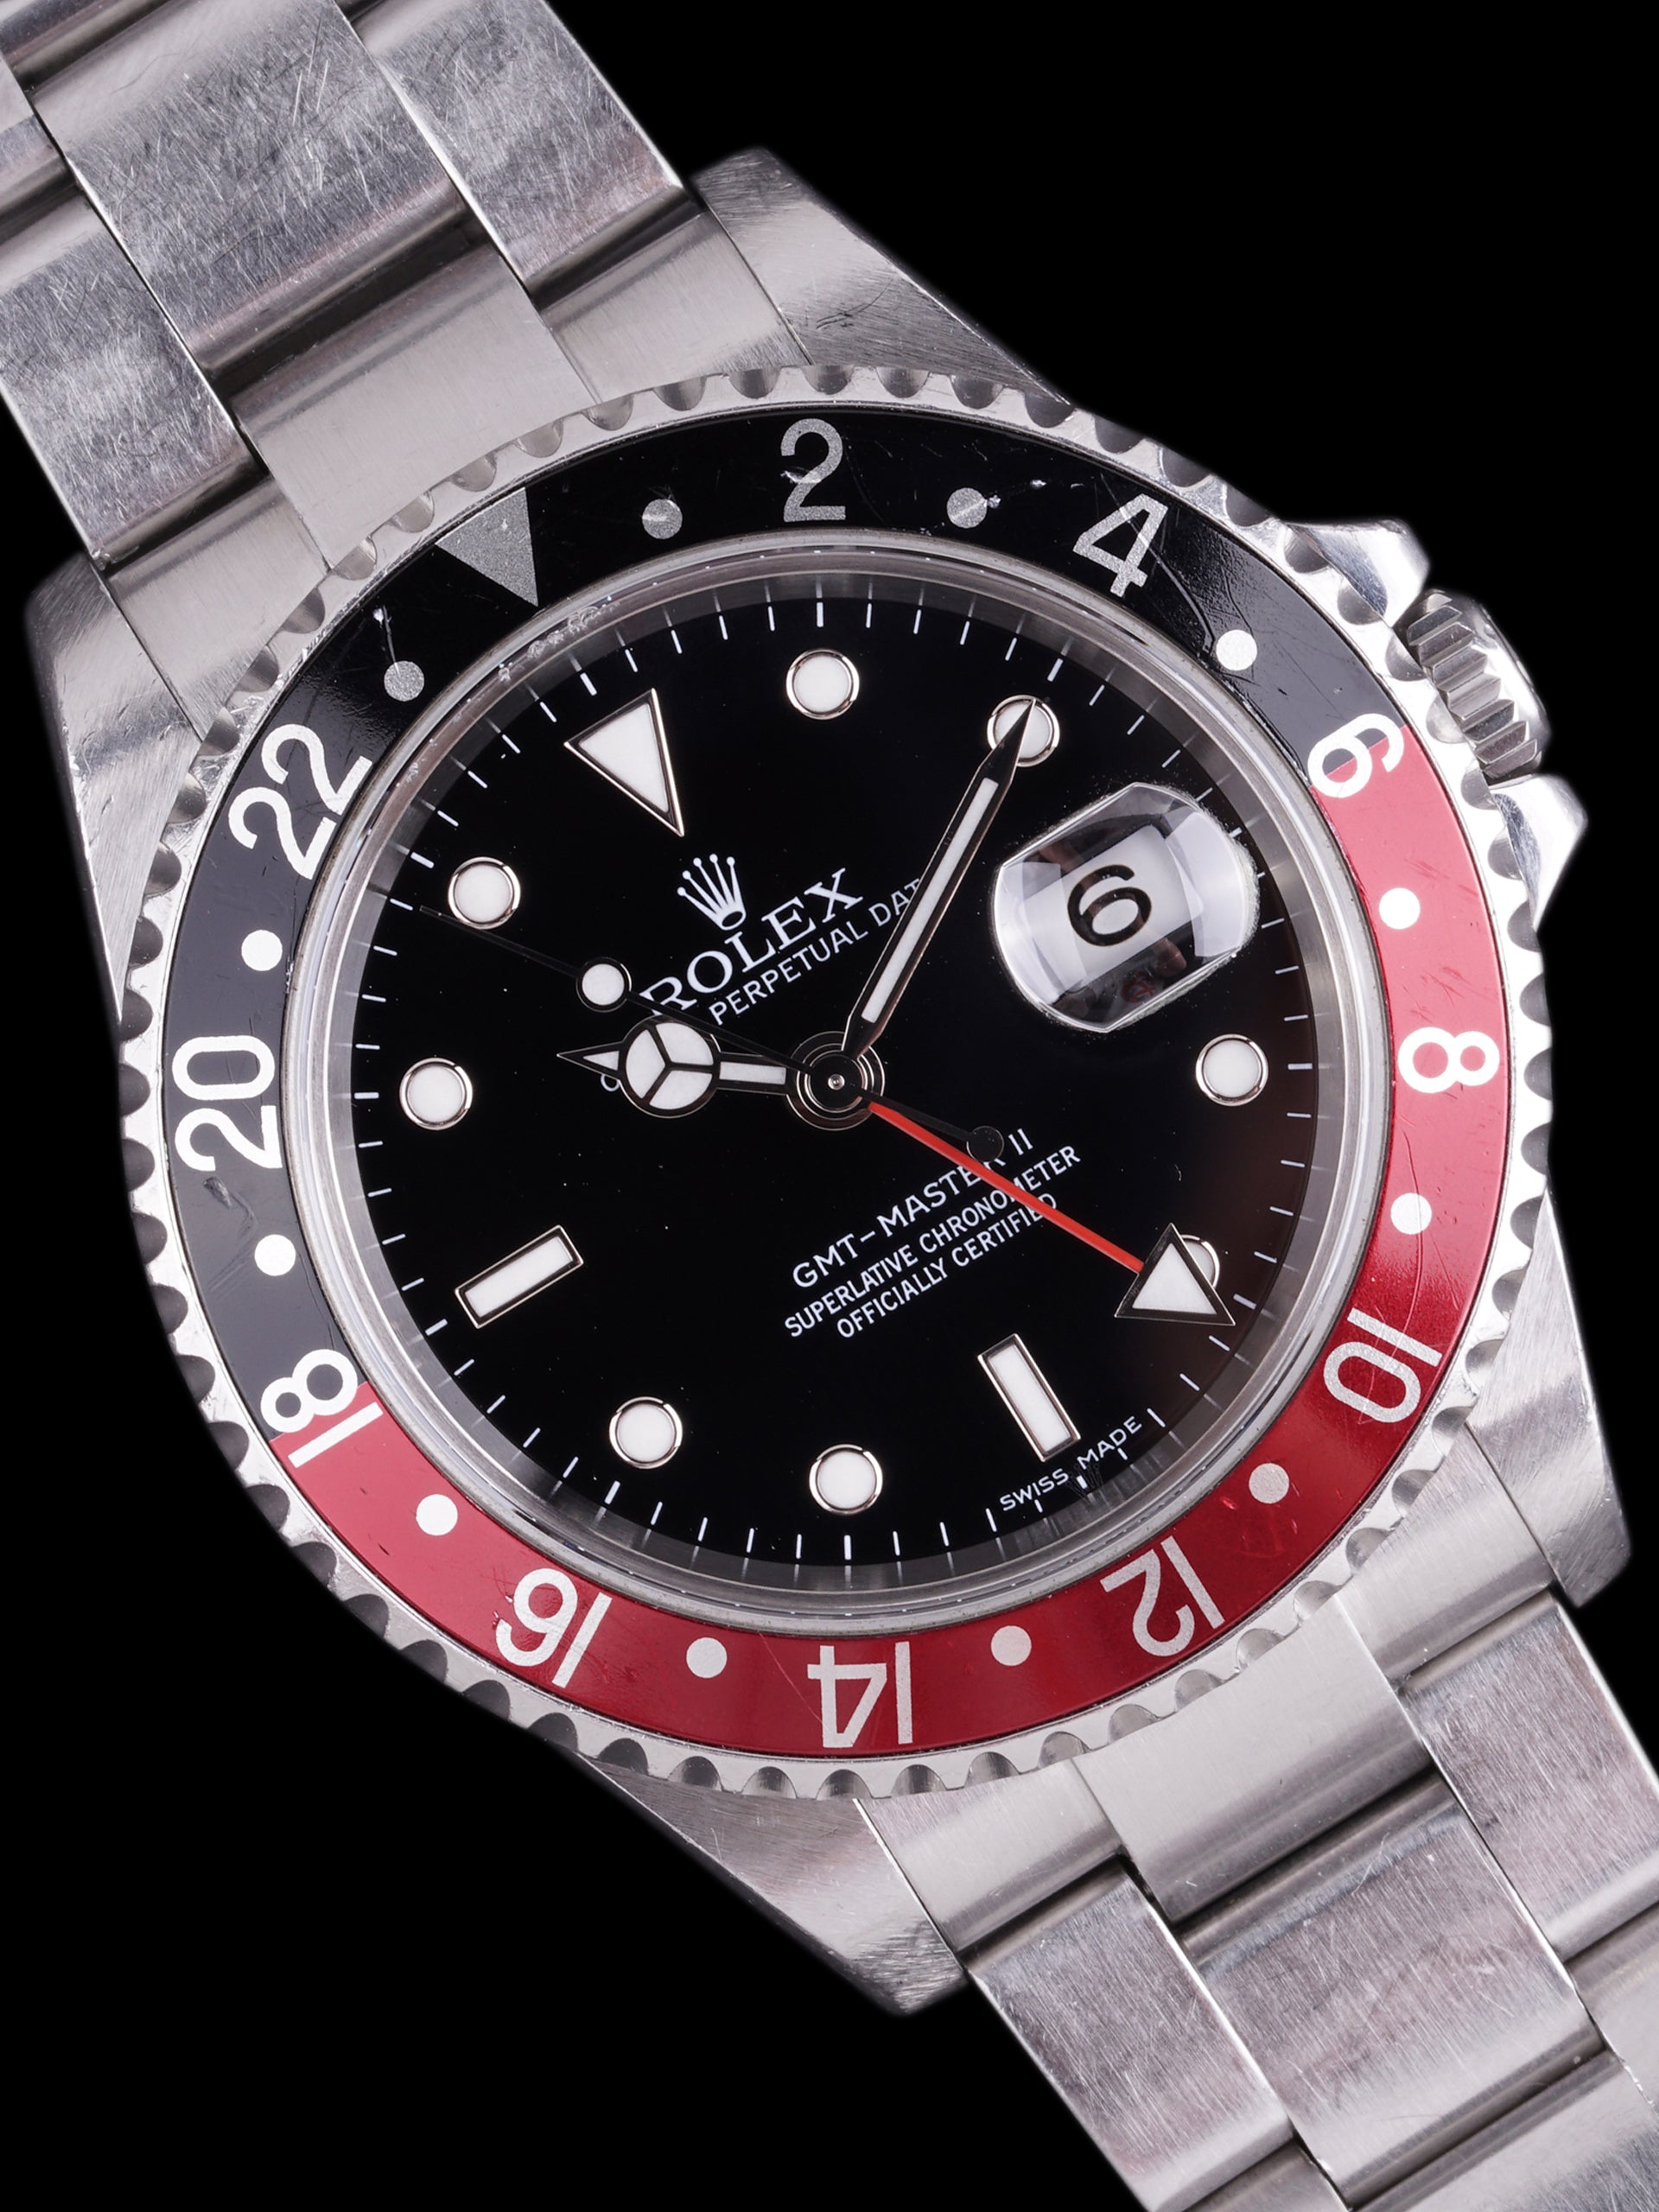 "***Delta Force*** 2007 Rolex GMT-Master II (Ref. 16710) ""Error Dial"" W/ Box, Papers + Full Military Provenance"